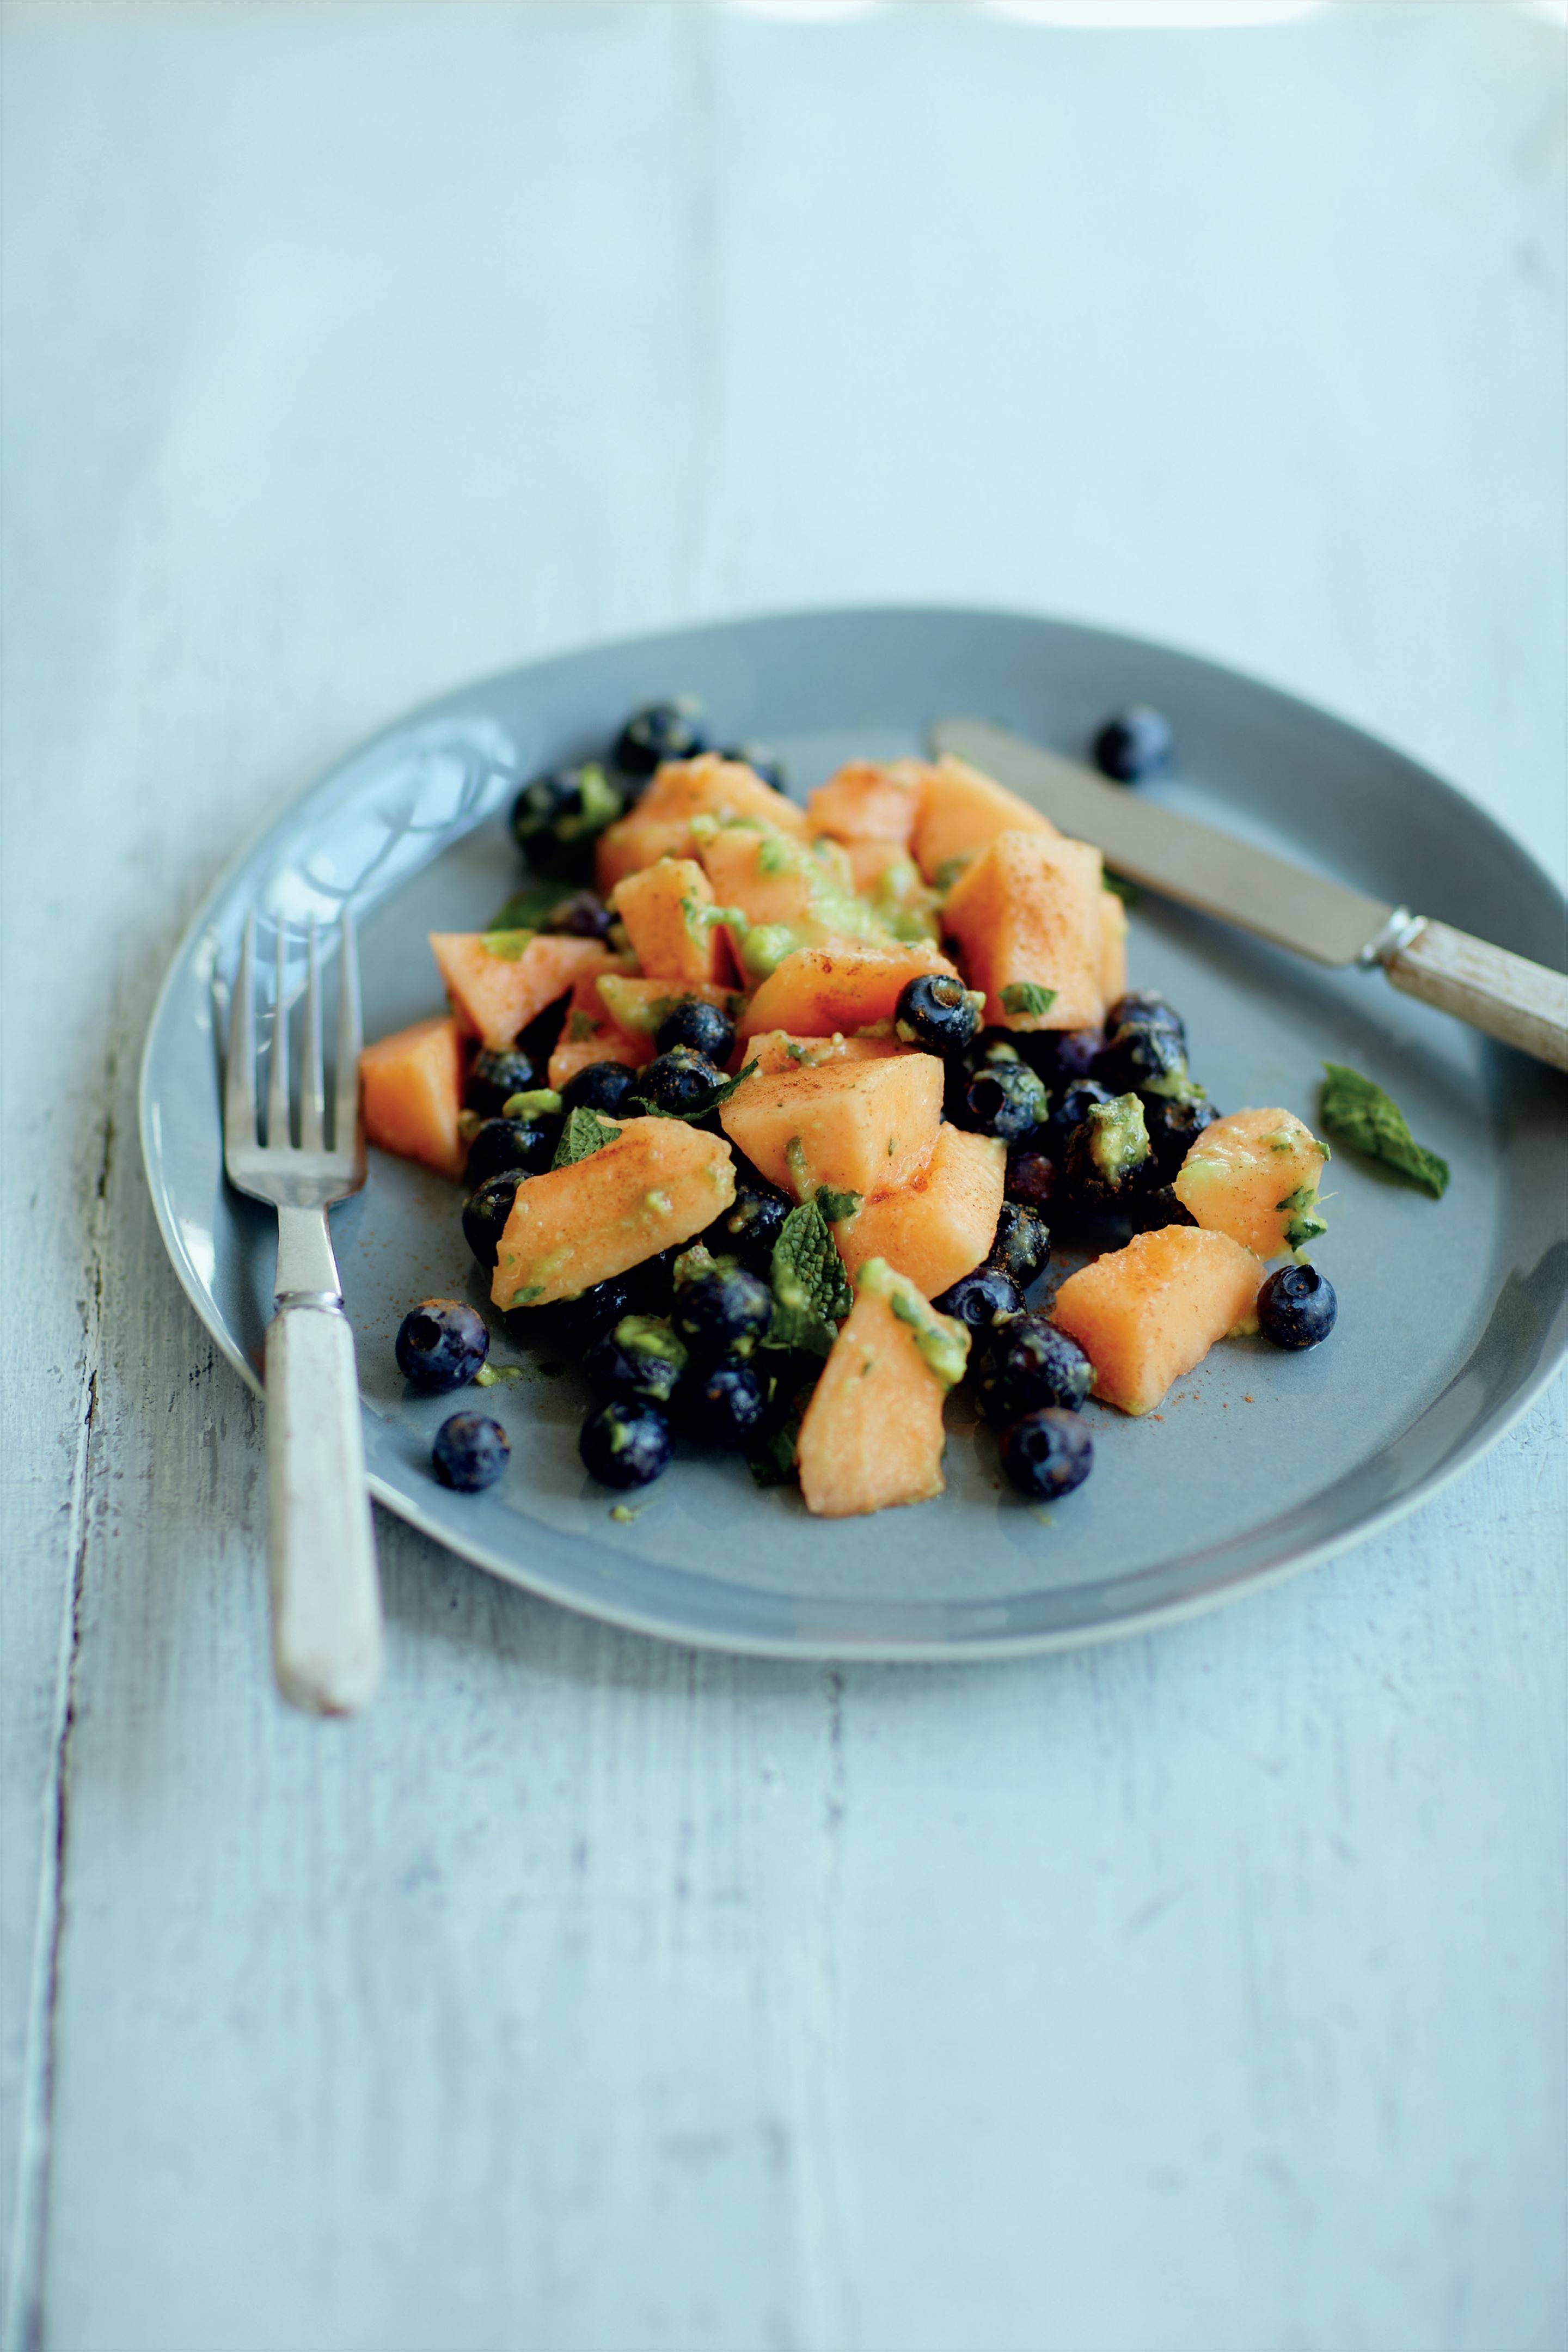 Cantaloupe melon and blueberry salad with avocado lime dressing